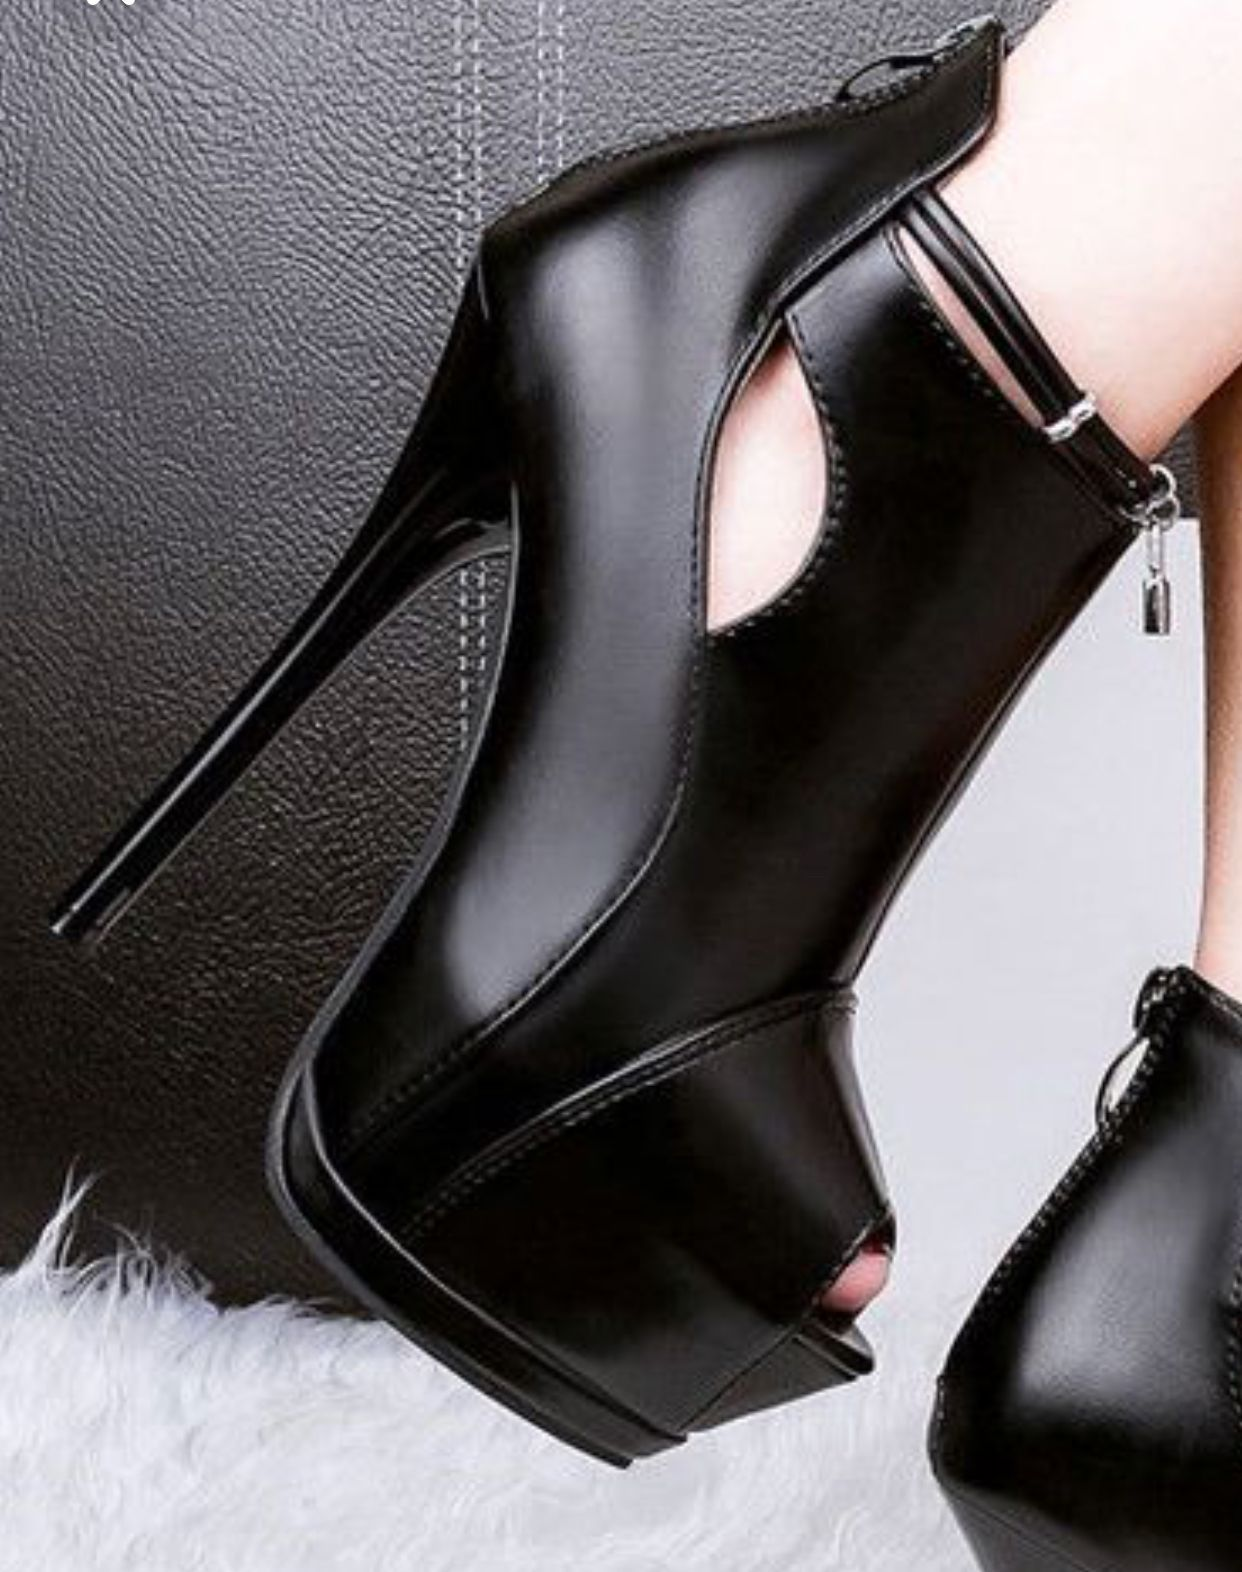 15c3d2b576 Pin by Amalea Morgan on shoes in 2019 | Shoes, High heels, Shoe boots